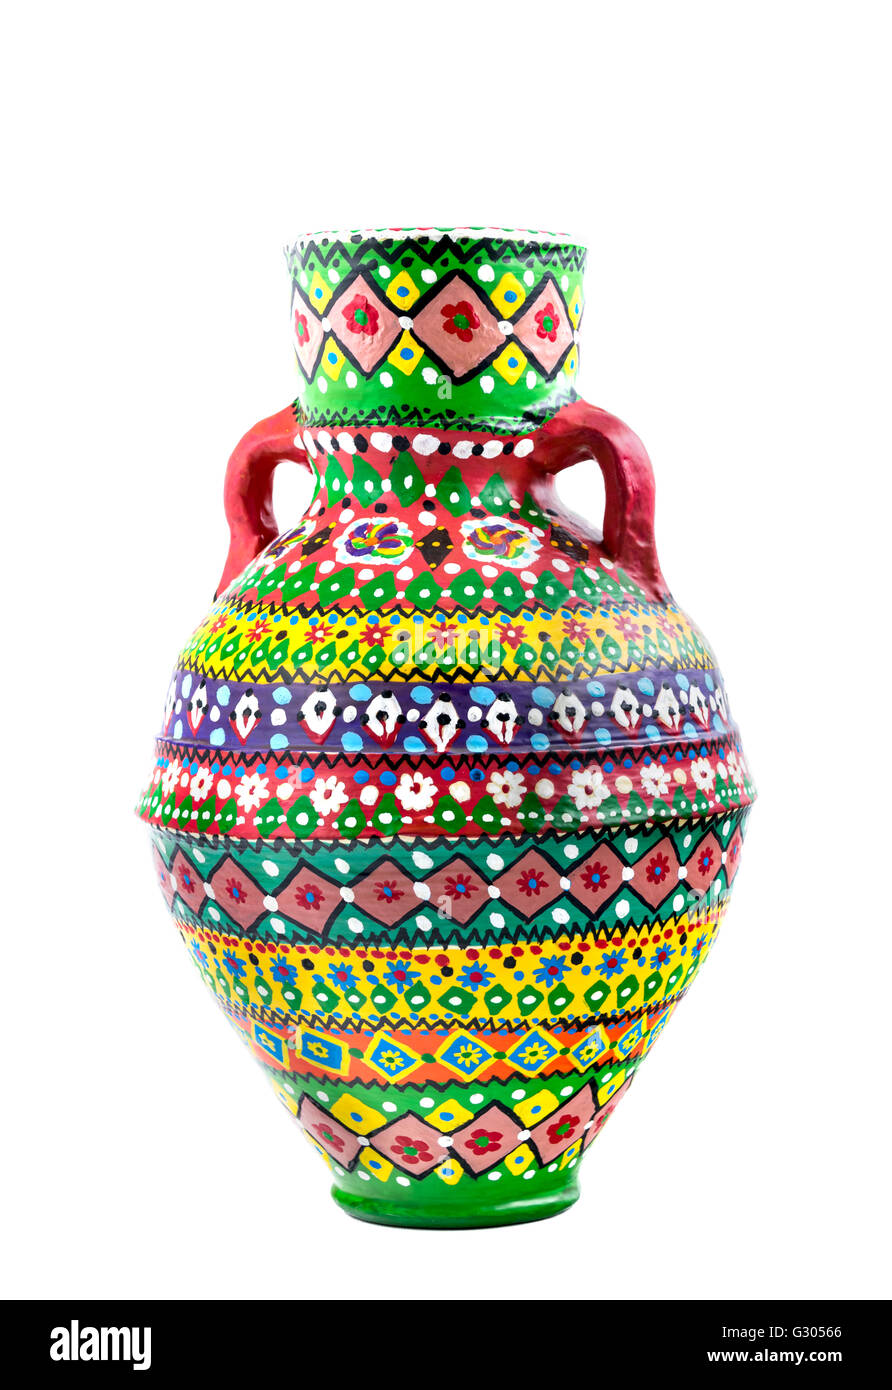 An Egyptian decorated colorful pottery vessel (arabic: Kolla) made of clay, one of the oldest habits of the Ancient - Stock Image